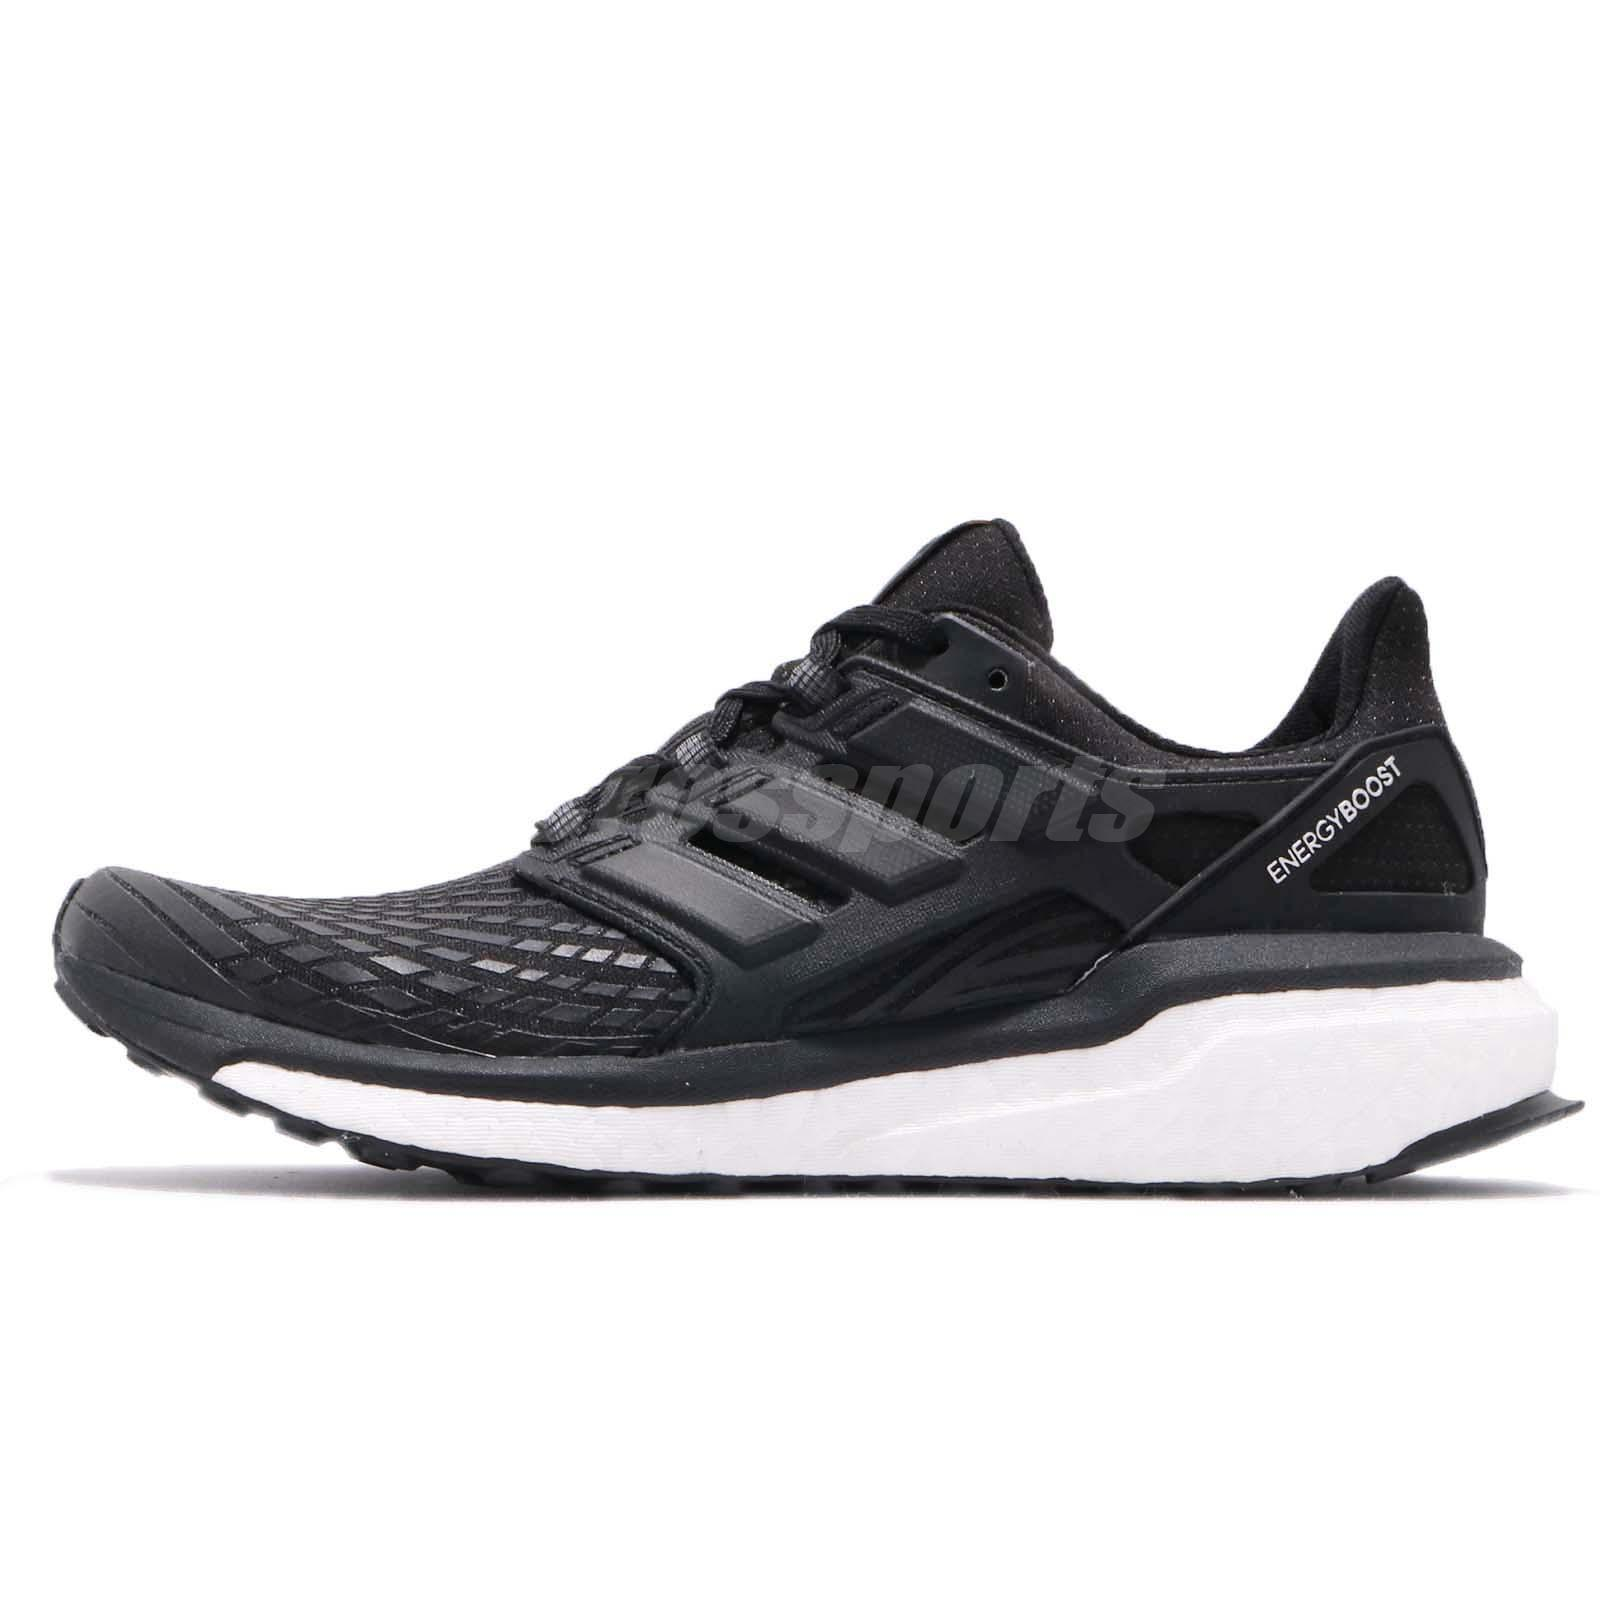 timeless design b4ecb d8cd1 adidas Energy Boost W Continental Black White Women Running Shoes Sneaker  CG3972